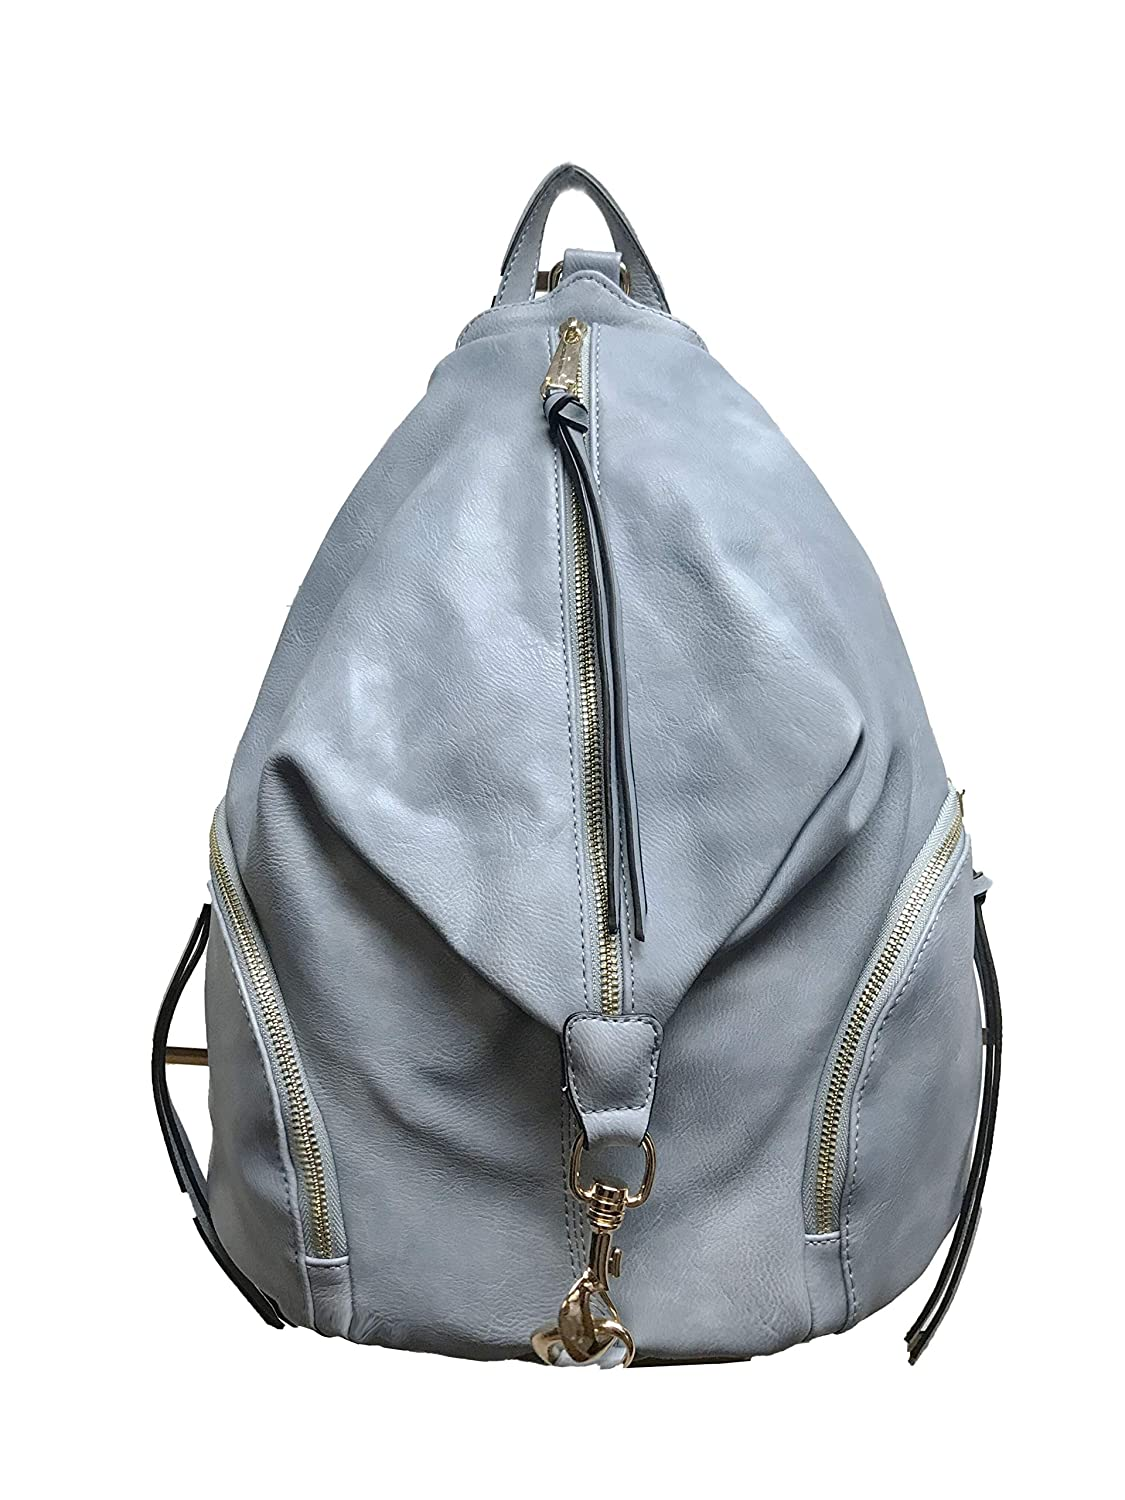 e629cae5f5 Amazon.com  Diophy PU Leather Fashion Backpack with Zipper Pockets on Both  Side Womens Purse Handbag AB-052 (Blue)  Shoes